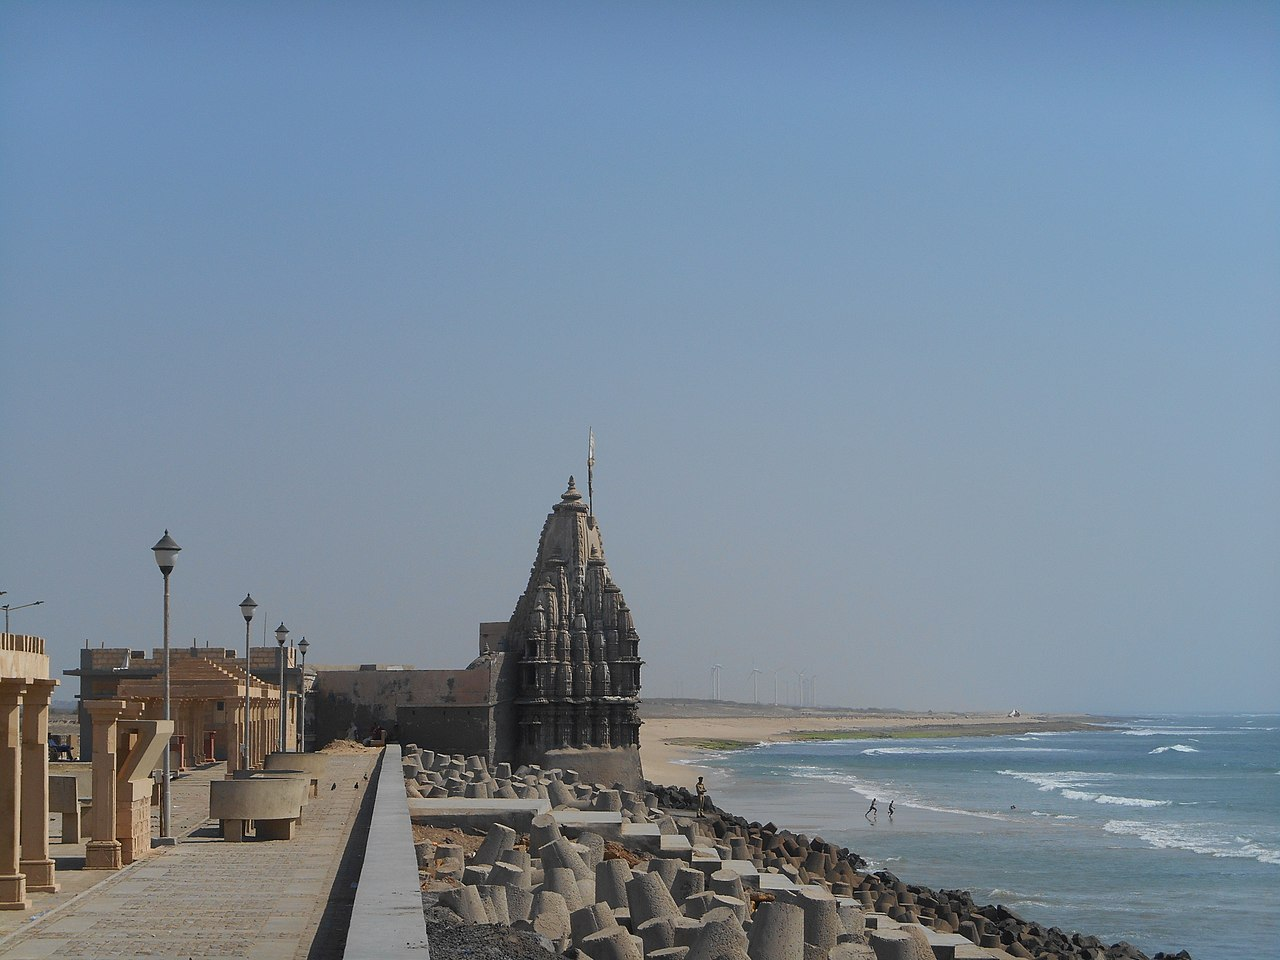 Visit Bet Dwarka Beach : One Of The Few Beaches That Give The Island Experience, Right Here In Gujarat (2020)